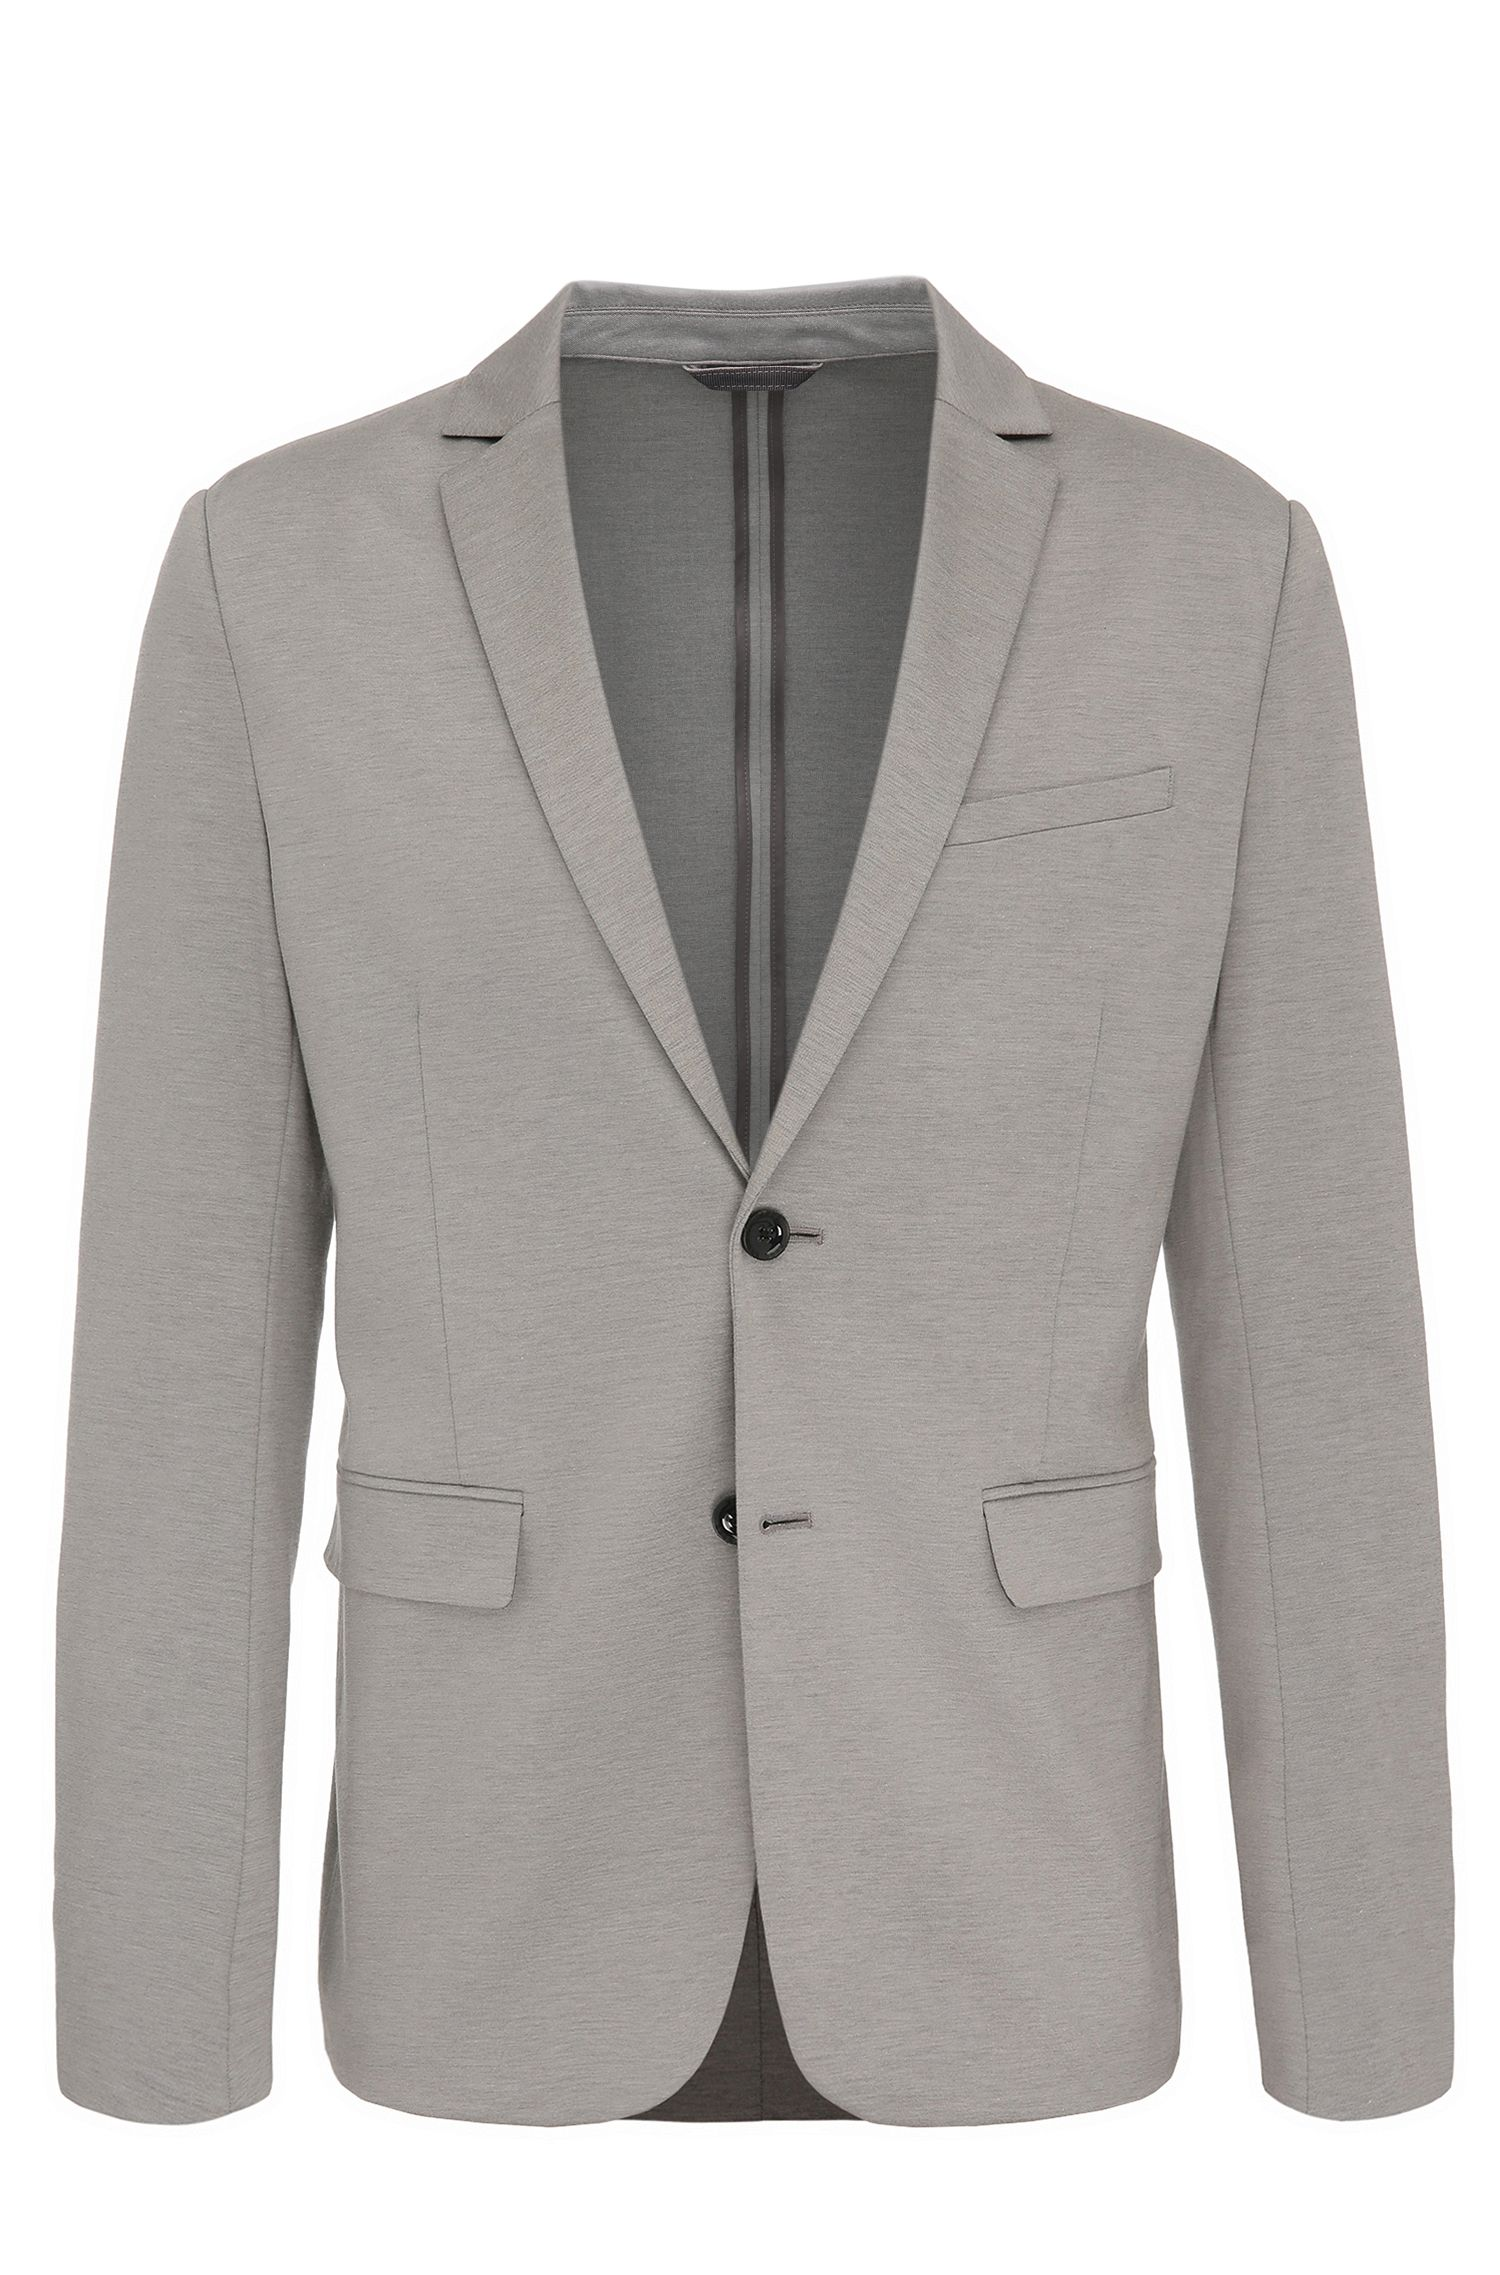 'Aloon' | Slim Fit, Cotton Blend Melange Jersey Sport Coat